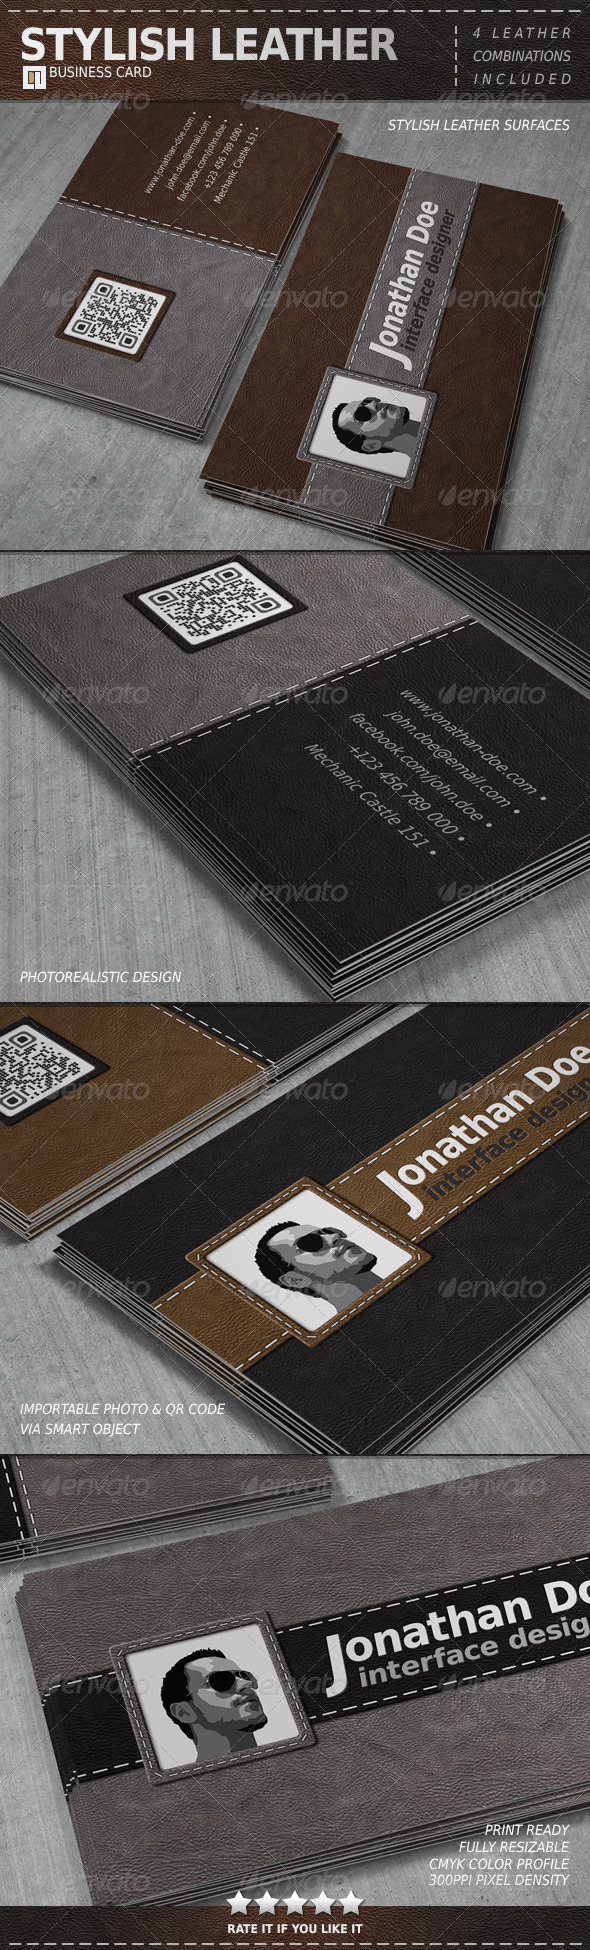 GraphicRiver Stylish Leather Business Card 6564745